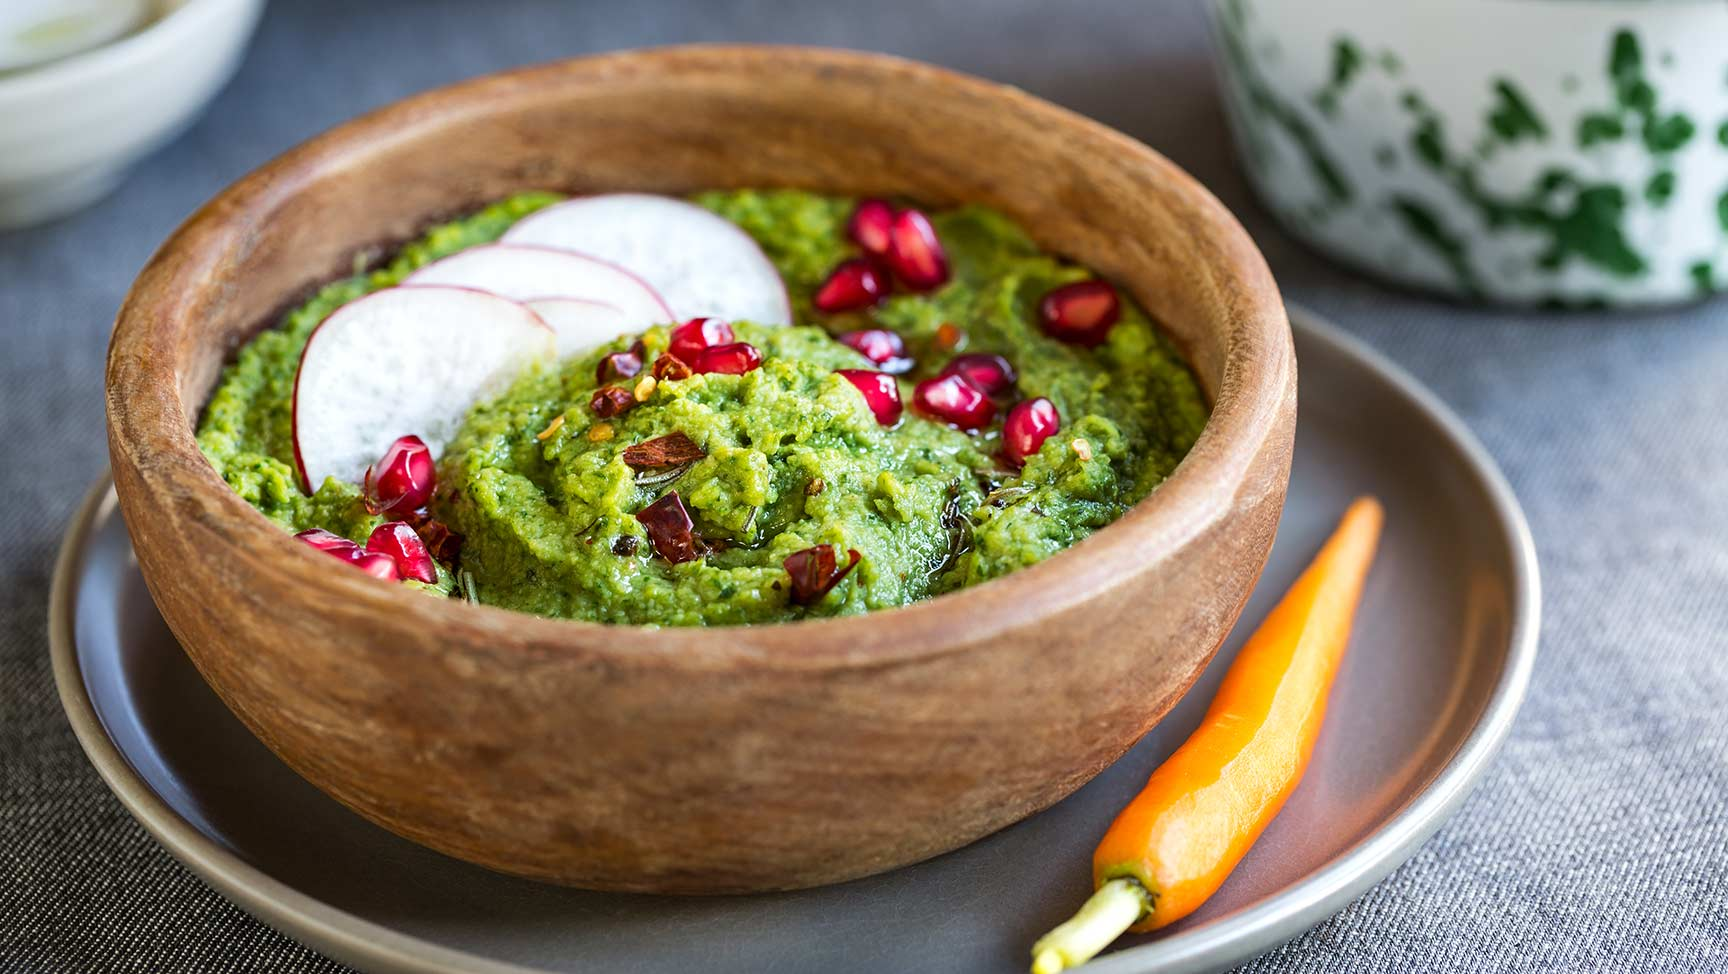 spinach-hummus-with-pomegranate-and-herbs-oil-PAK4LRZ